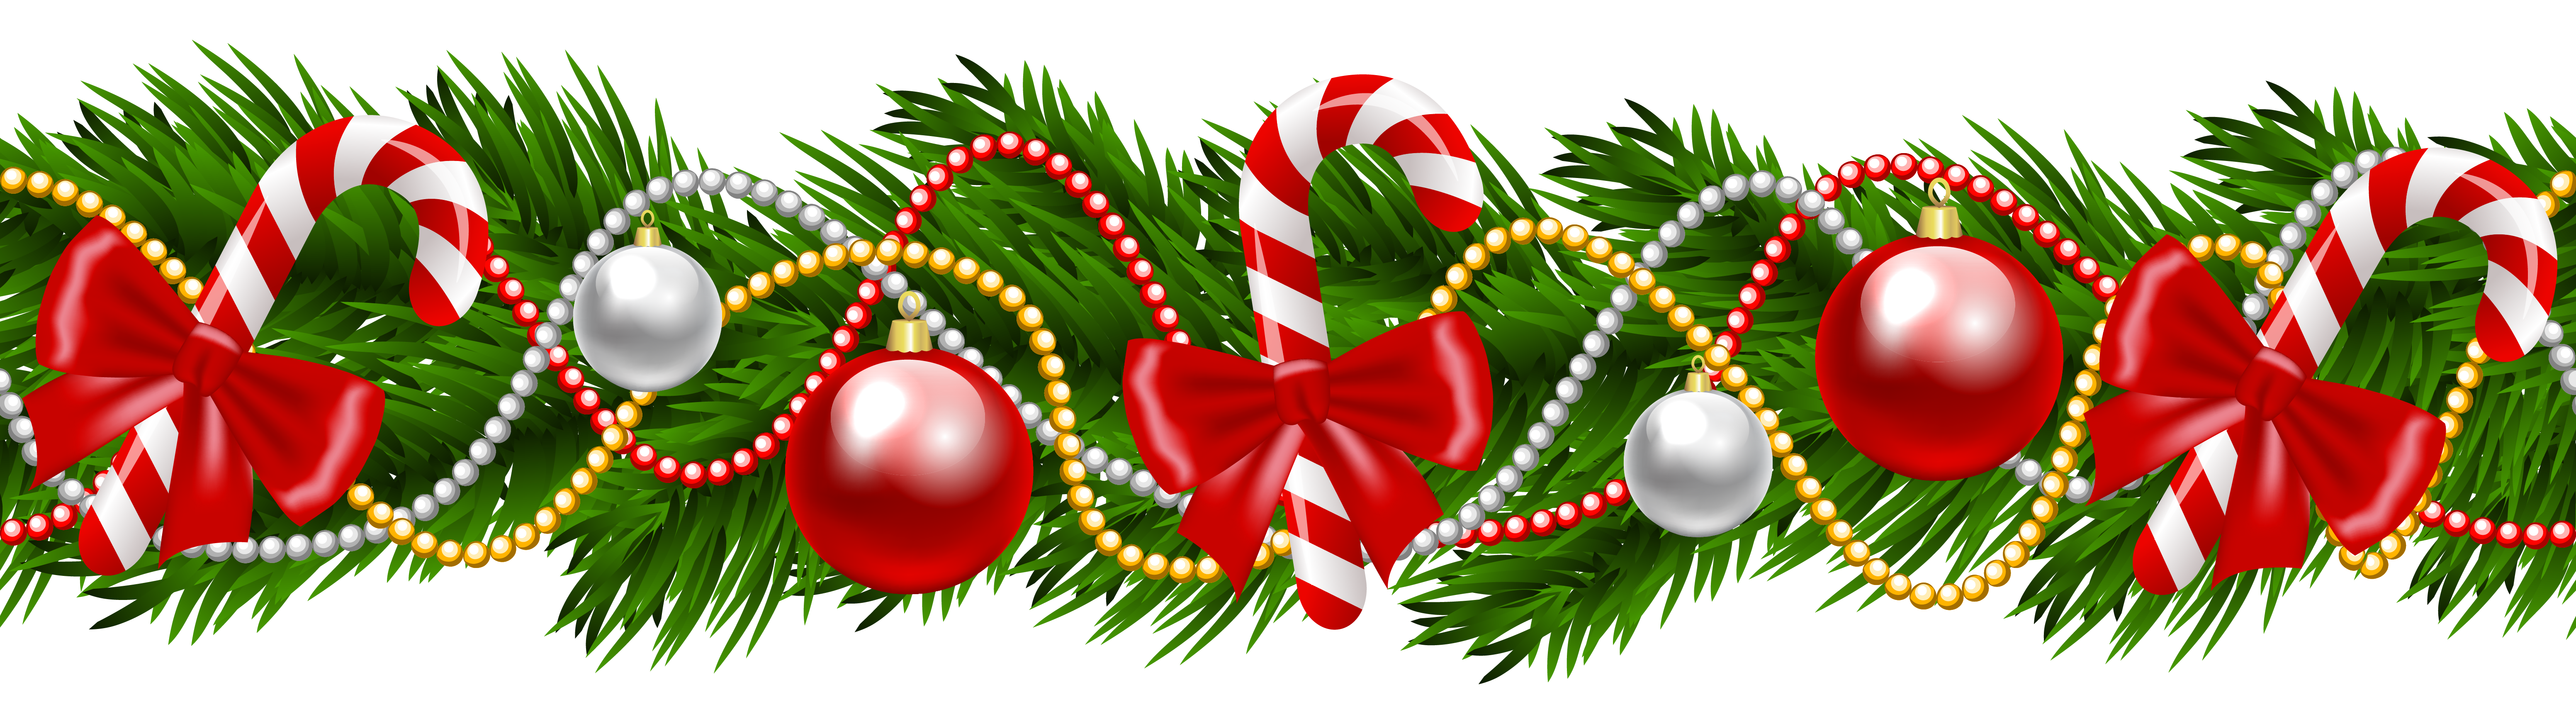 clipart free Christmas Pine Deco Garland PNG Clipart Image